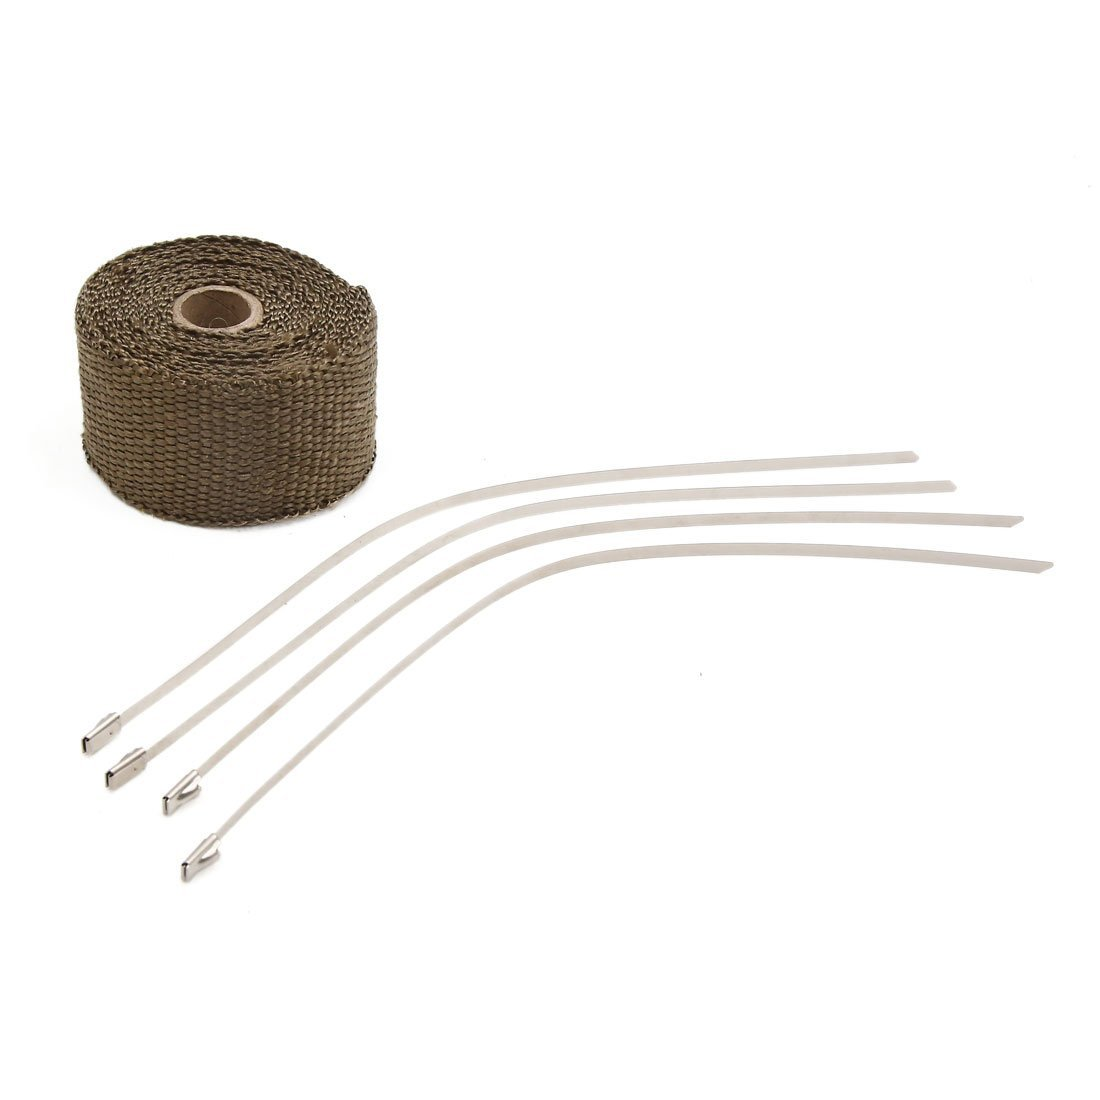 Cheap Pipe Insulation Wrap Find Deals On Line Cloth High Heat Resistant Wiring Insulating Tape 15m Get Quotations Uxcell Gold Tone Fiberglass Exhaust Turbo 5m Long